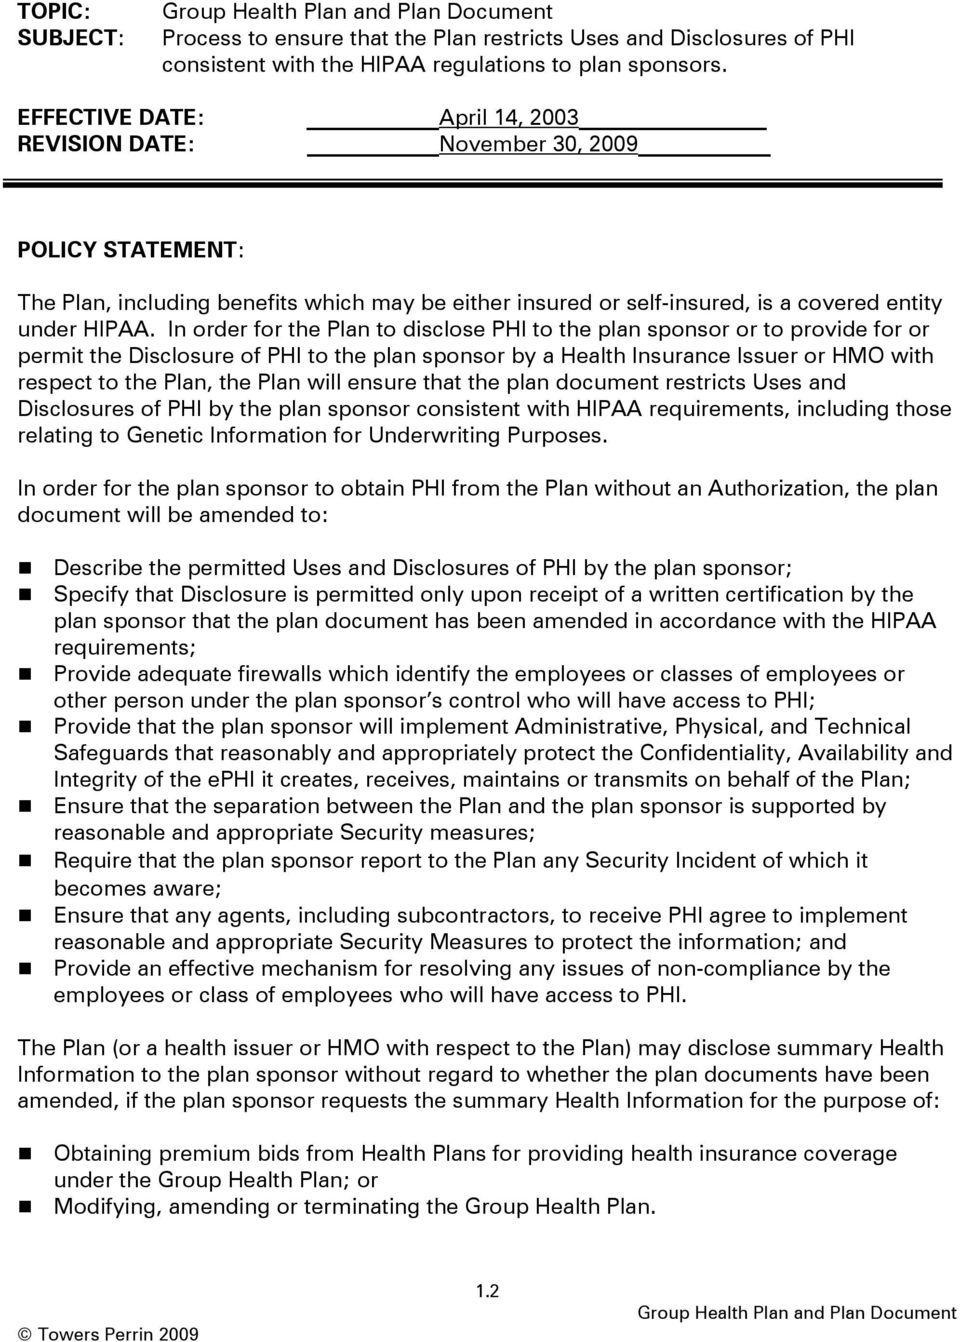 In order for the Plan to disclose PHI to the plan sponsor or to provide for or permit the Disclosure of PHI to the plan sponsor by a Health Insurance Issuer or HMO with respect to the Plan, the Plan